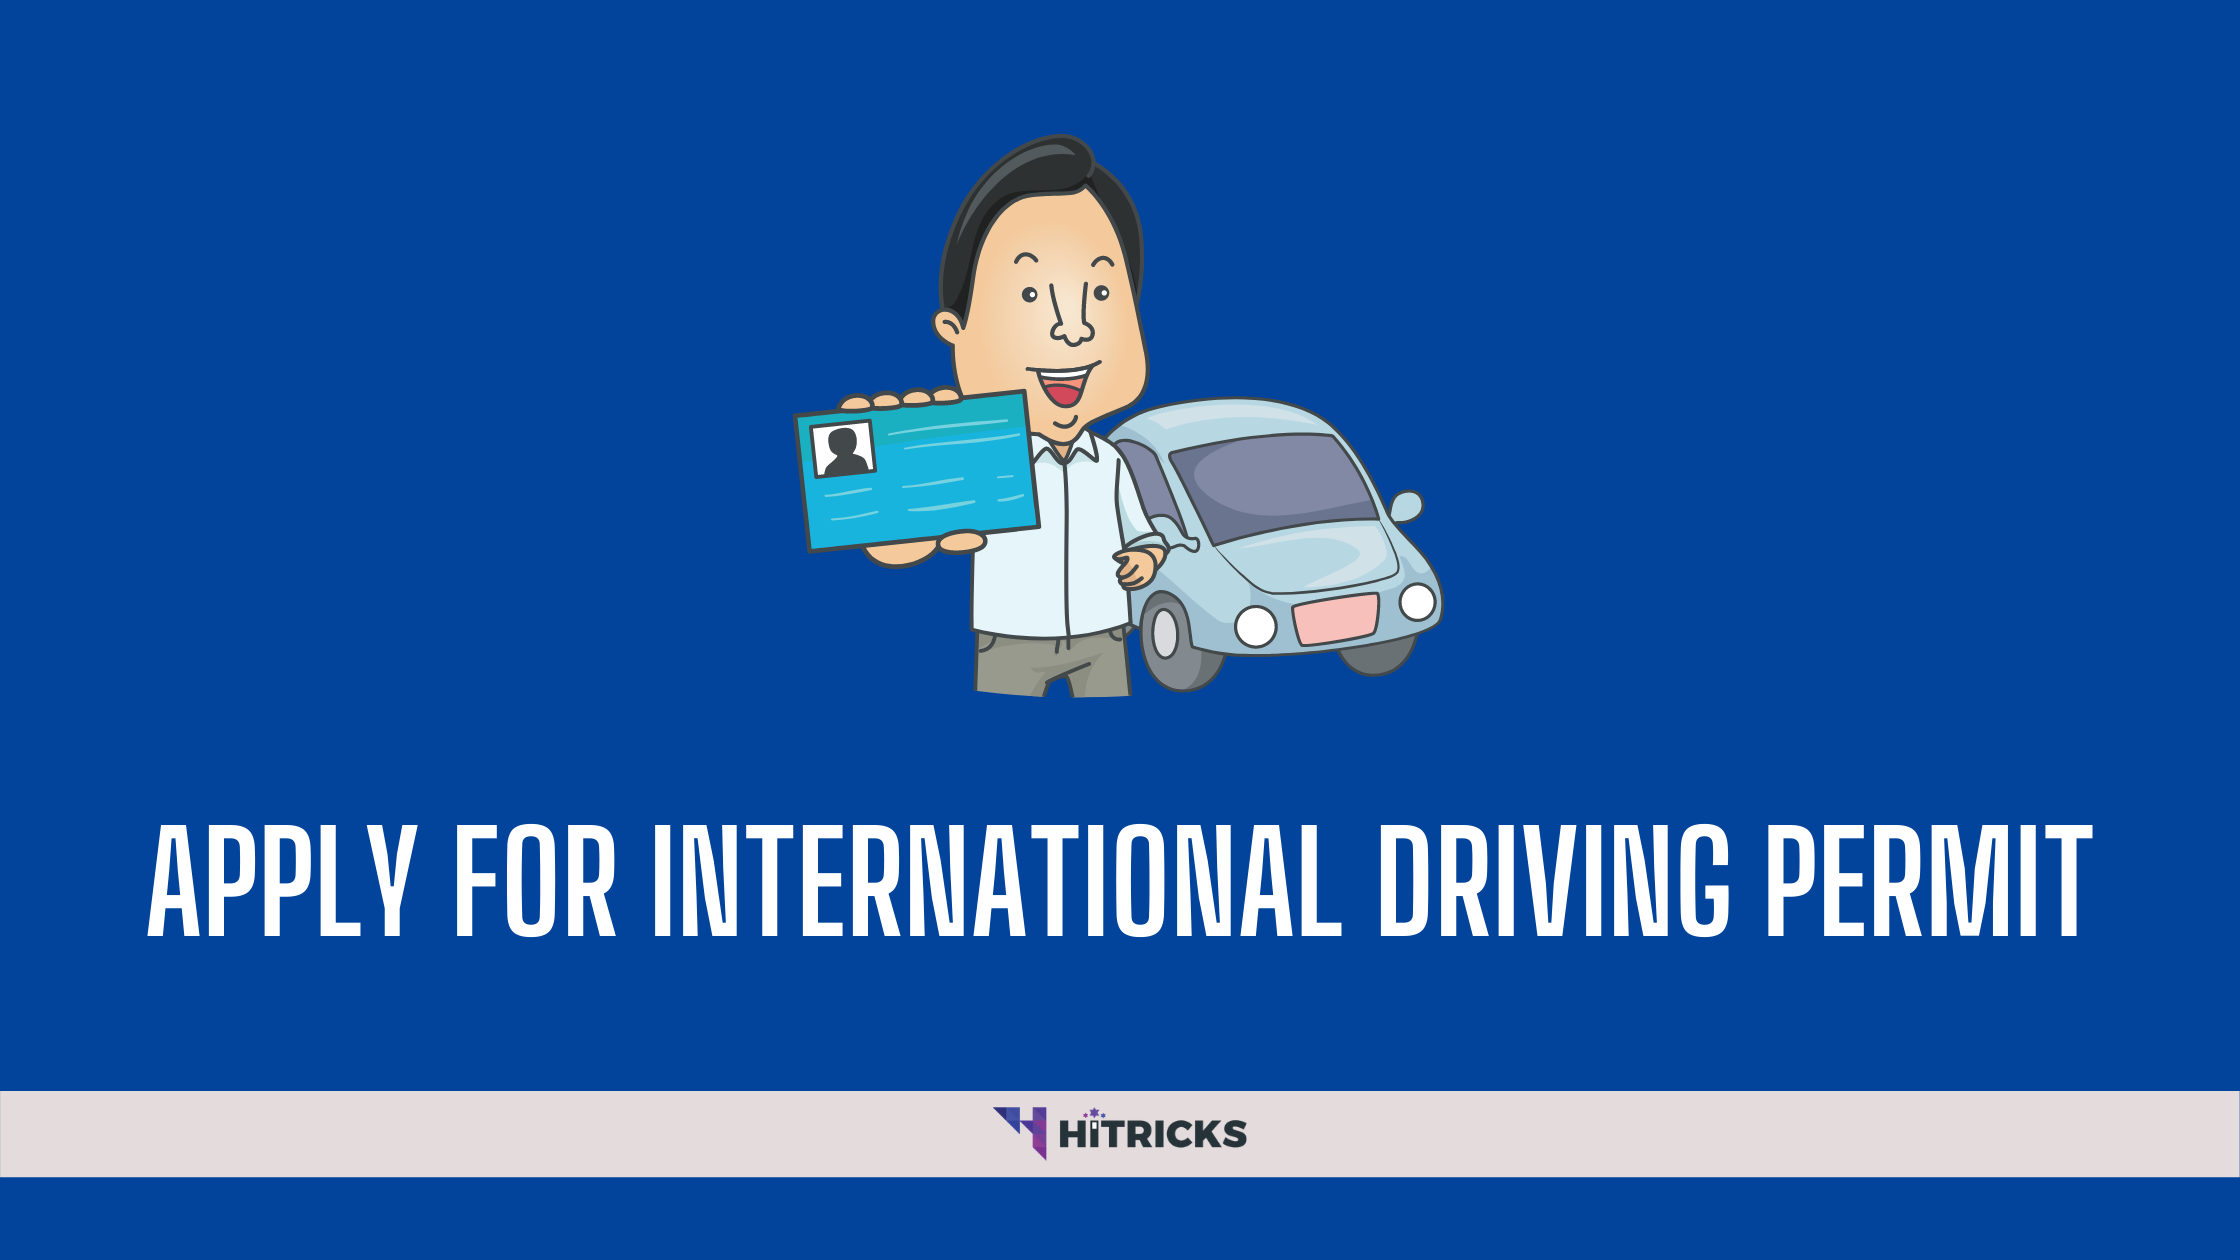 How To Apply for an International Driving Permit?